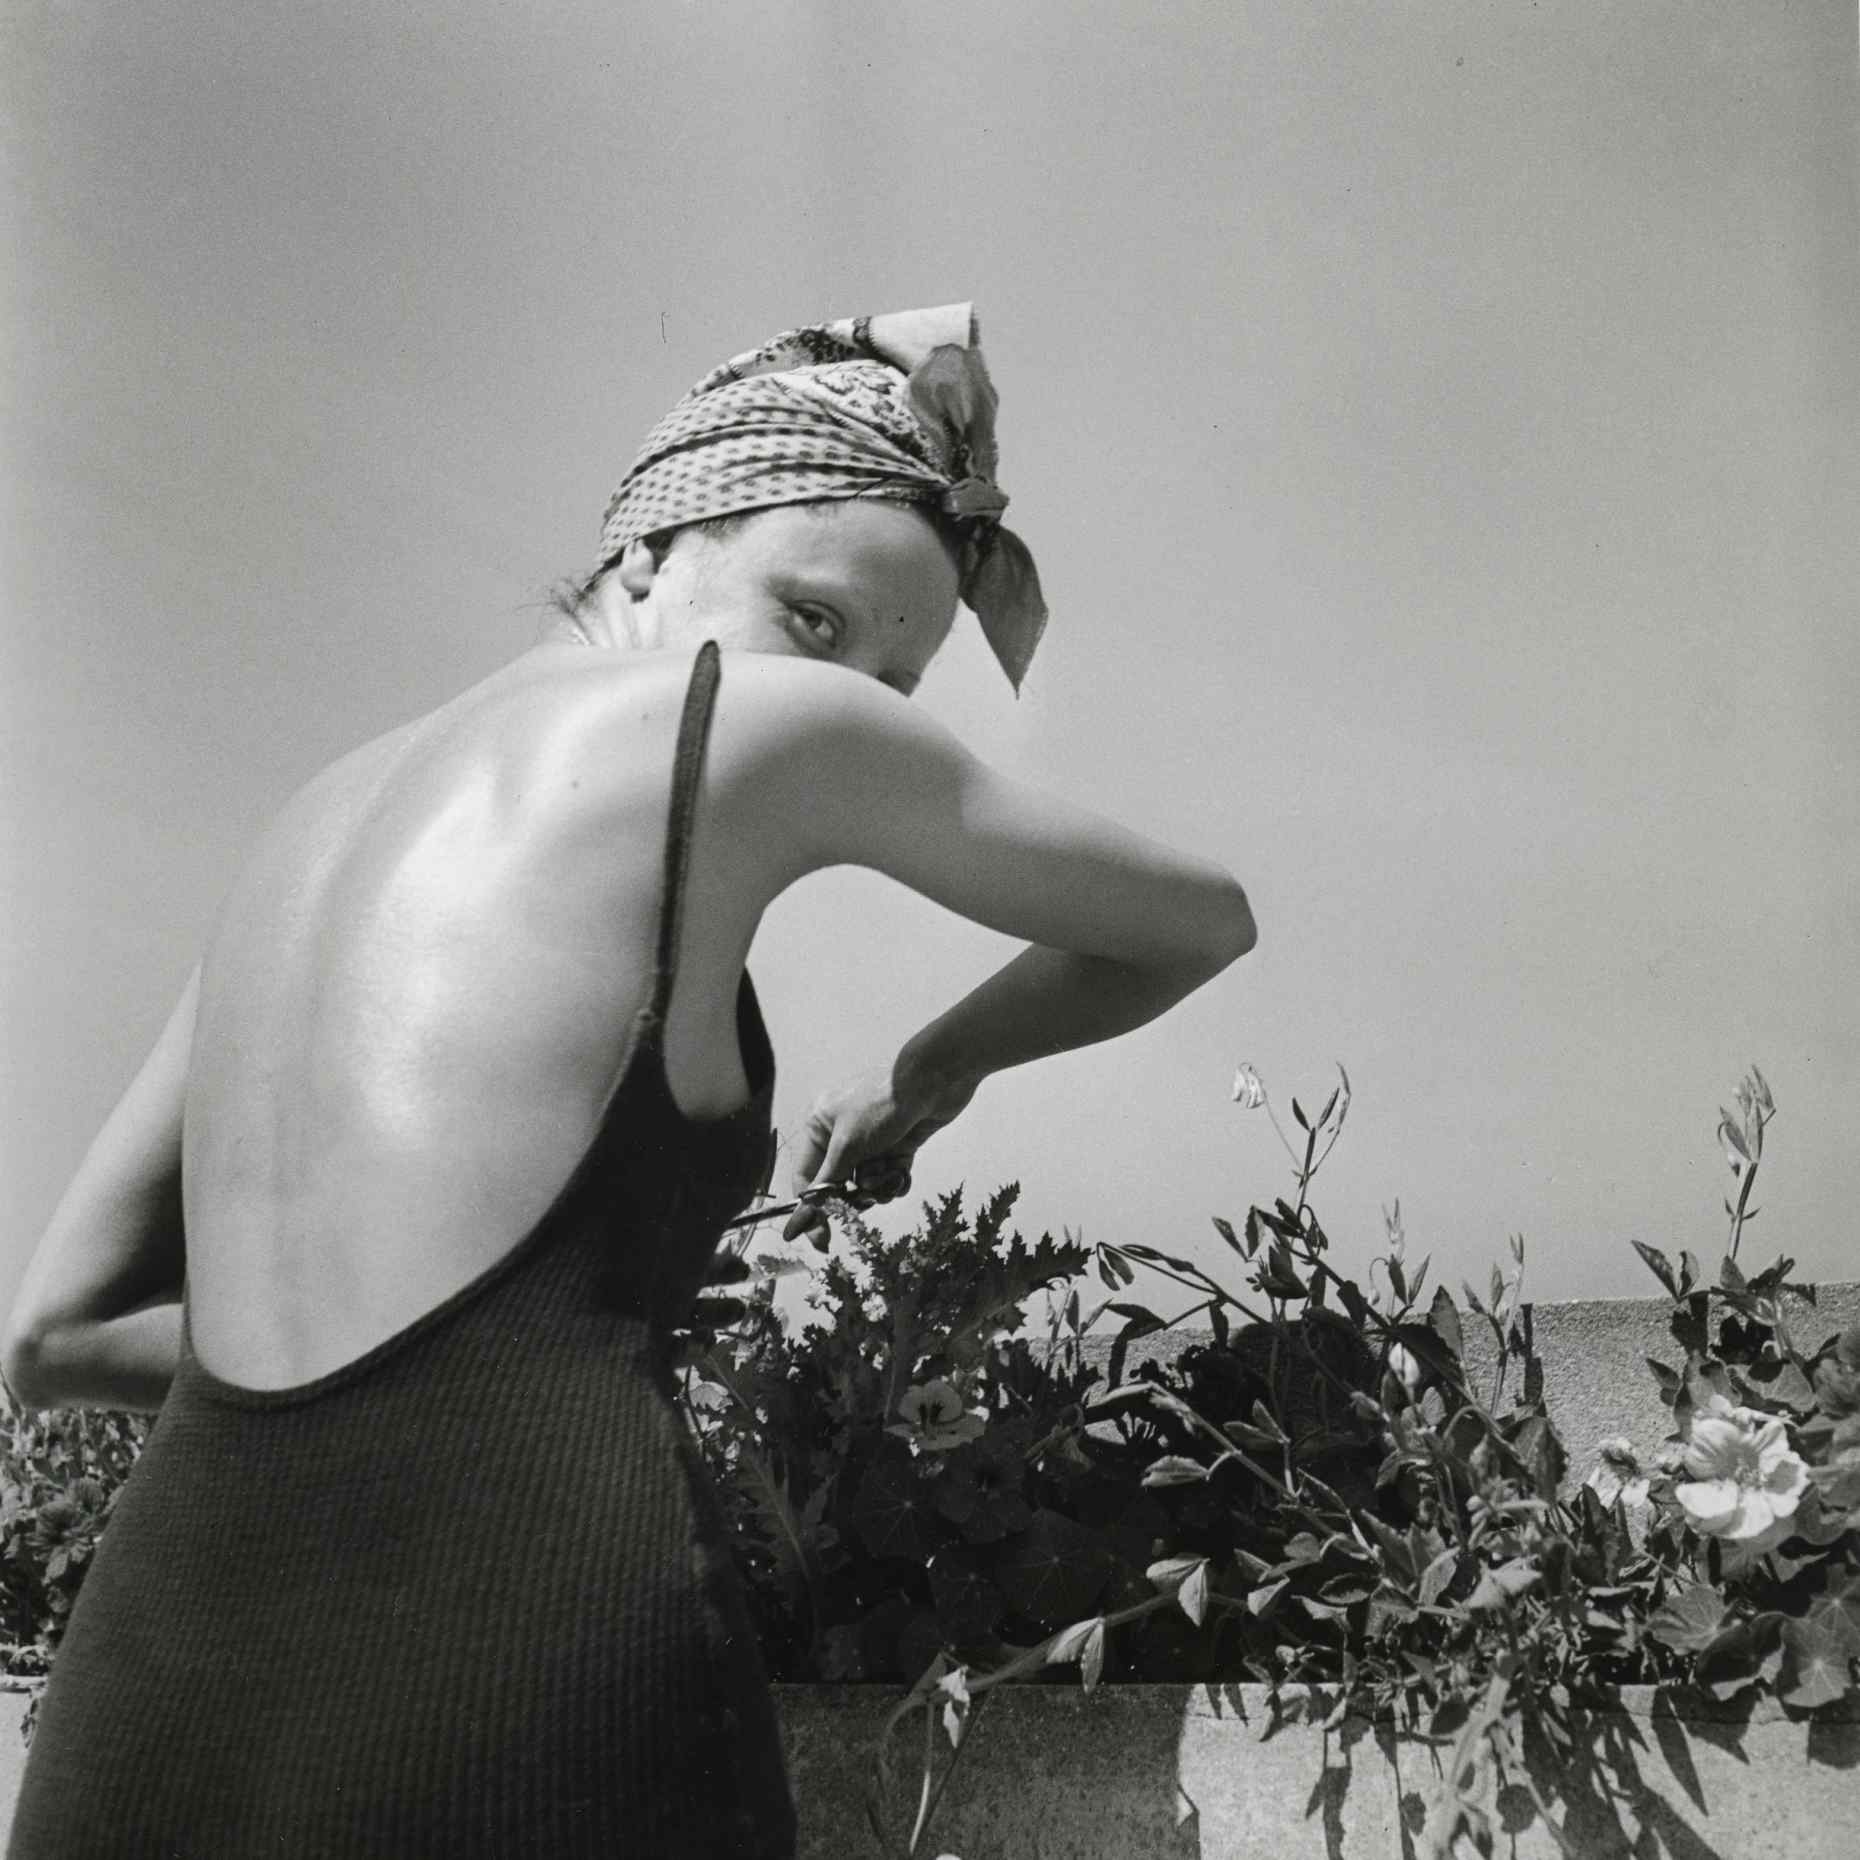 Coco on the terrace, Neuilly, June 1938  by Jacques-Henri Lartigue © Ministère de la Culture - France / A.A.J.H.L.